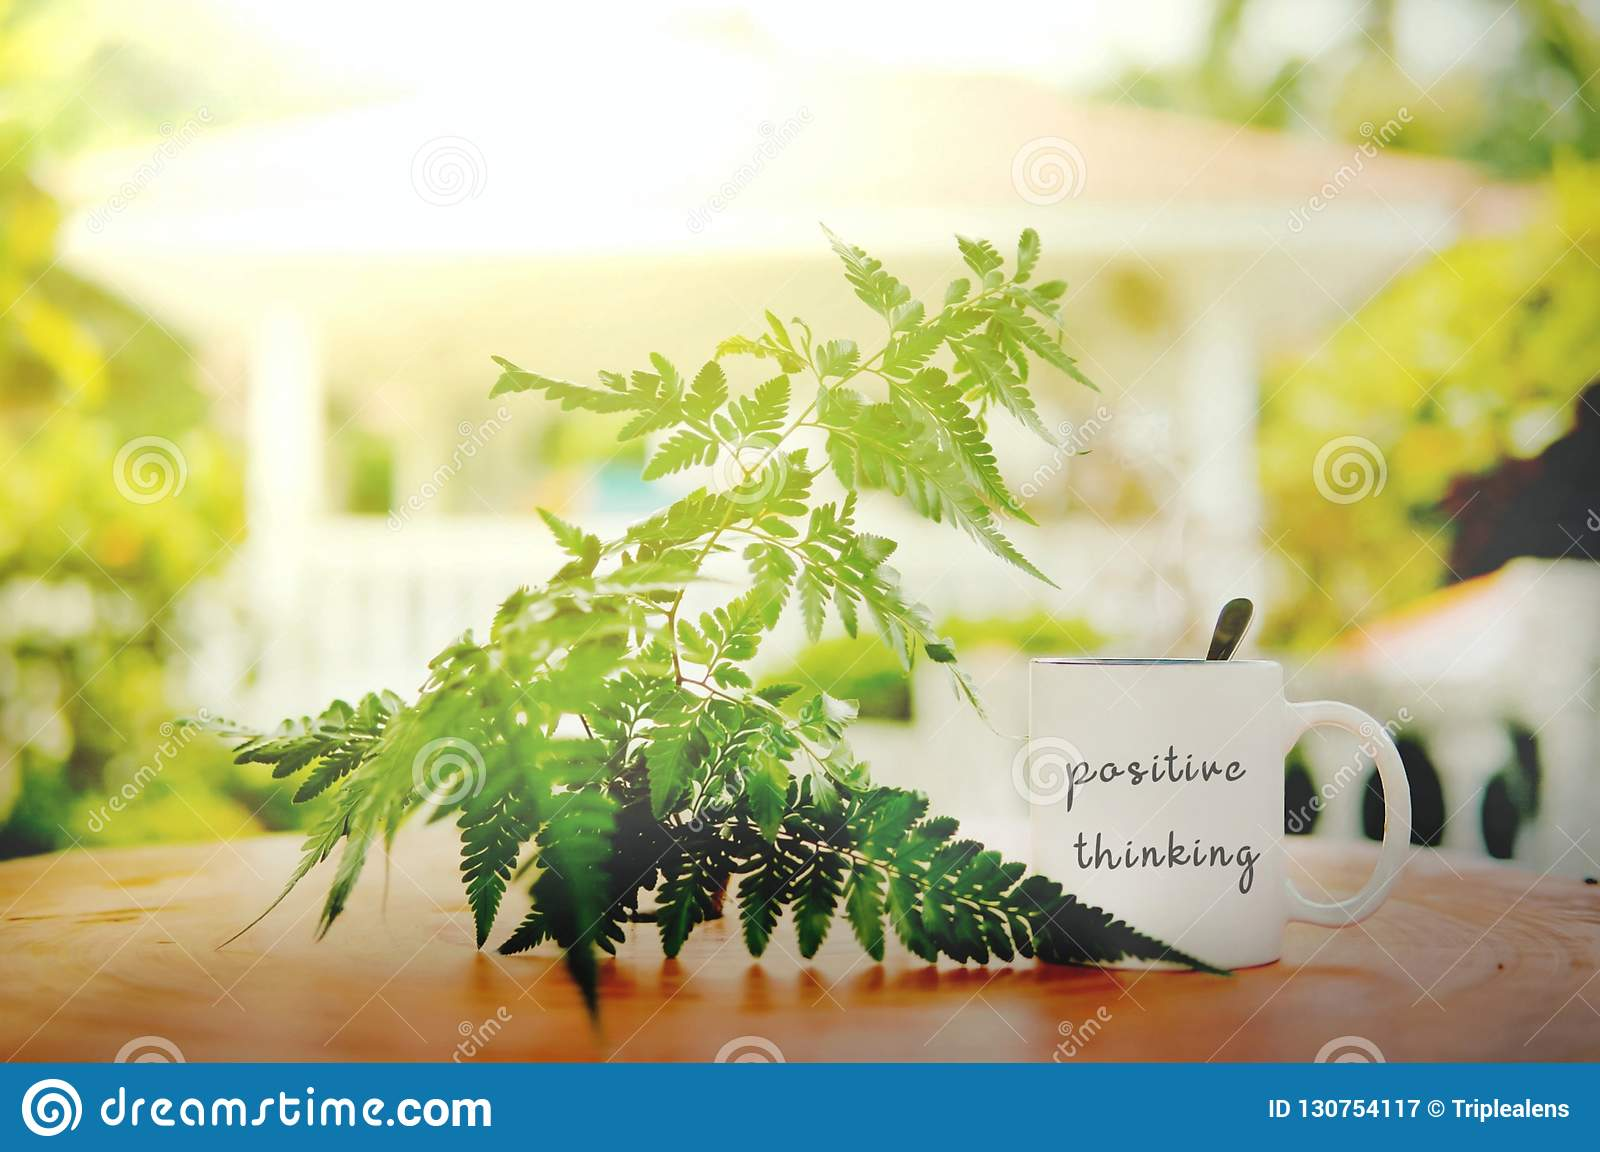 positive thinking words written at white mug on the wooden table against leaf and sun flare with blurry bokeh background